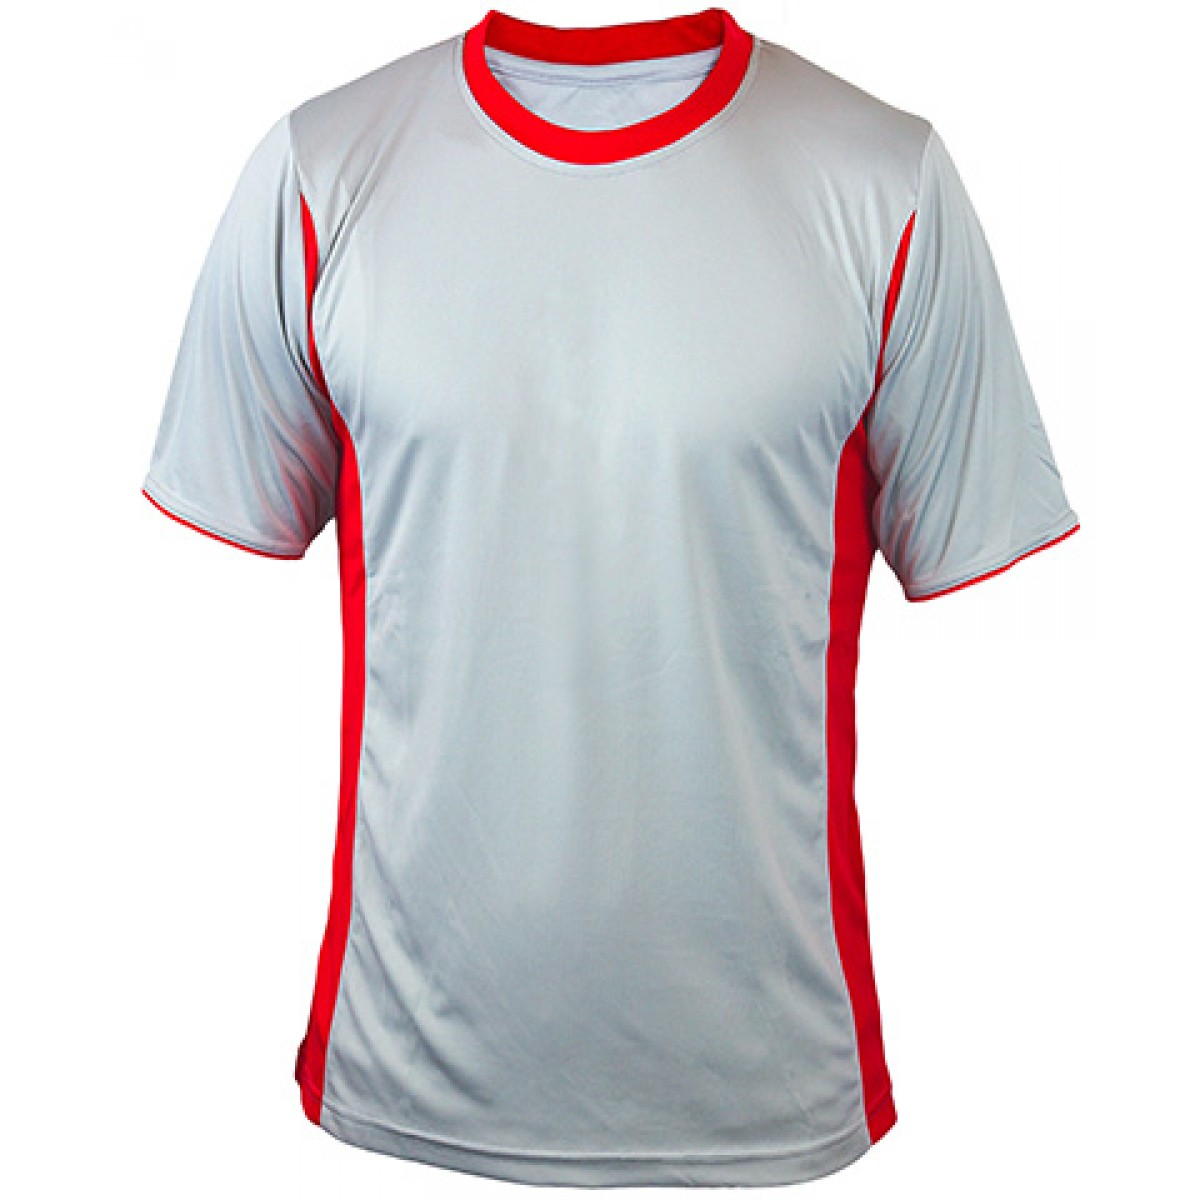 Gray Short Sleeves Performance With Red Side Insert-Gray/Red-XL